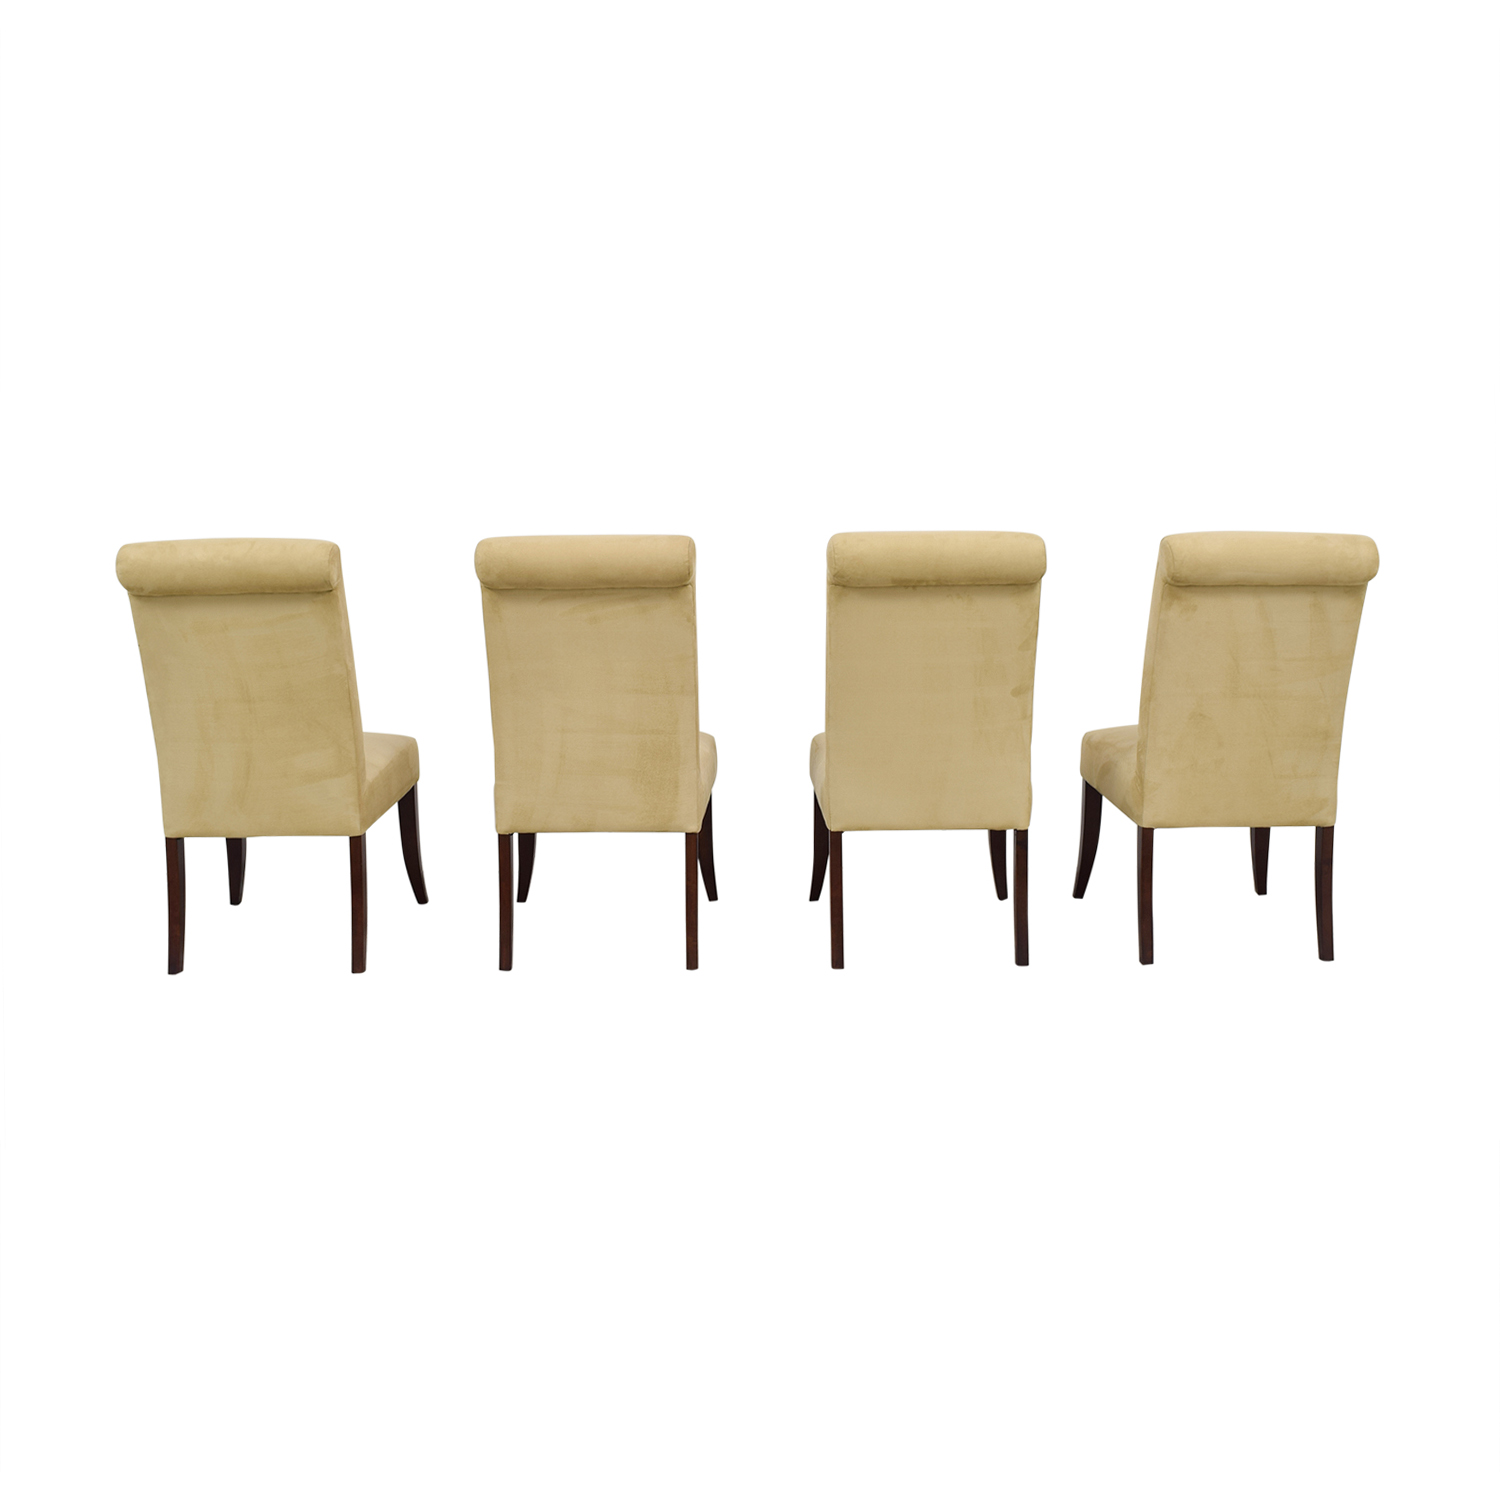 buy Pottery Barn Beige Upholstered Dining Chairs Pottery Barn